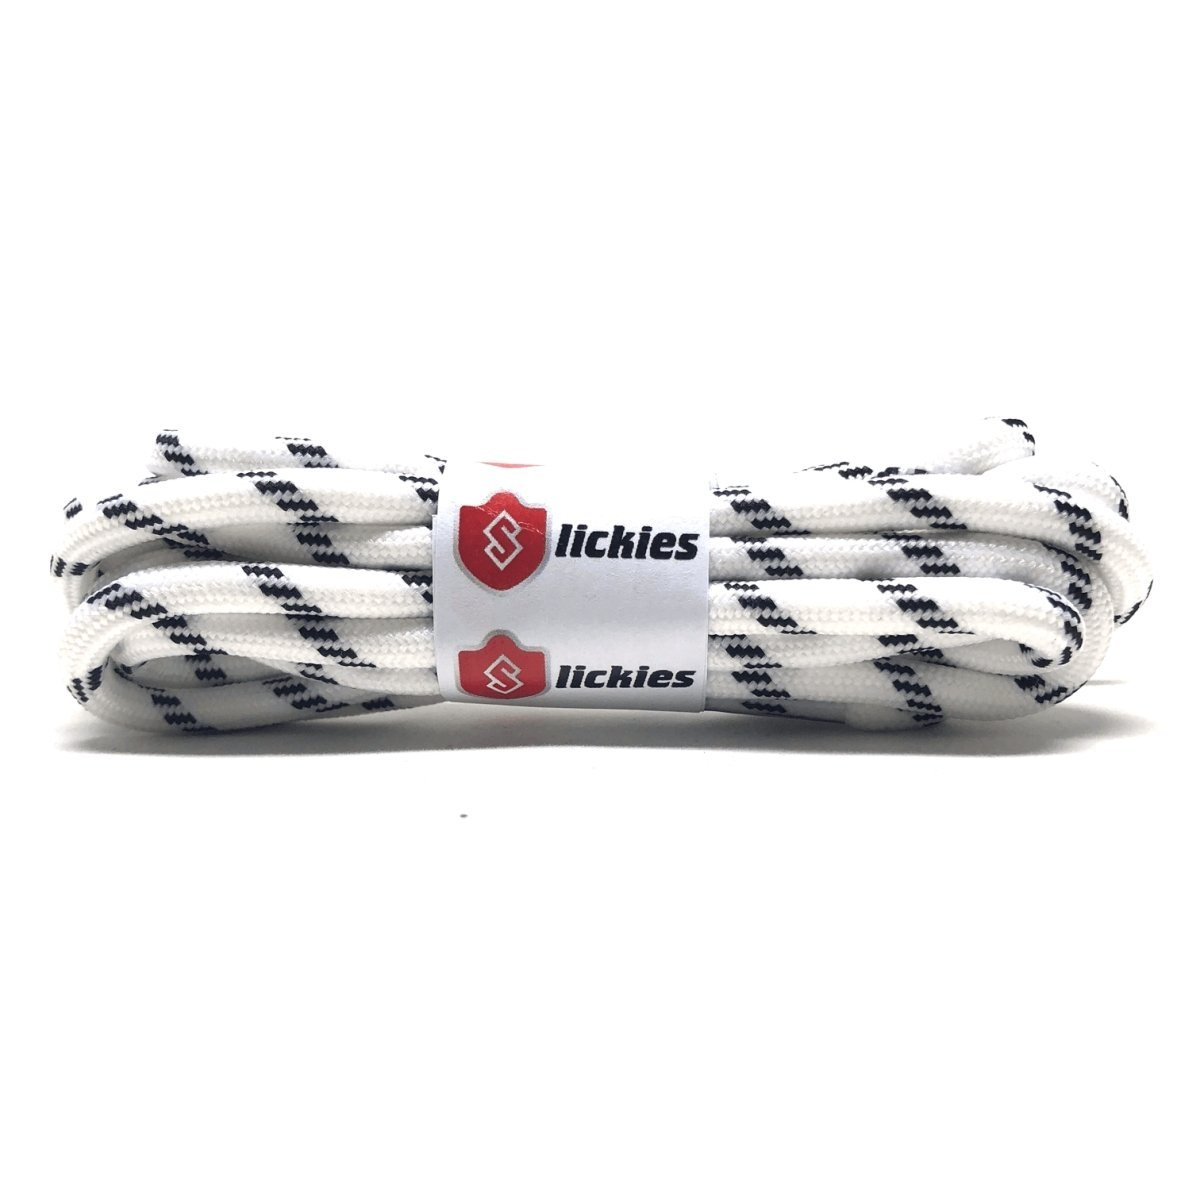 Rope Laces - 2TONE Rope Laces -  White With Black Diamonds